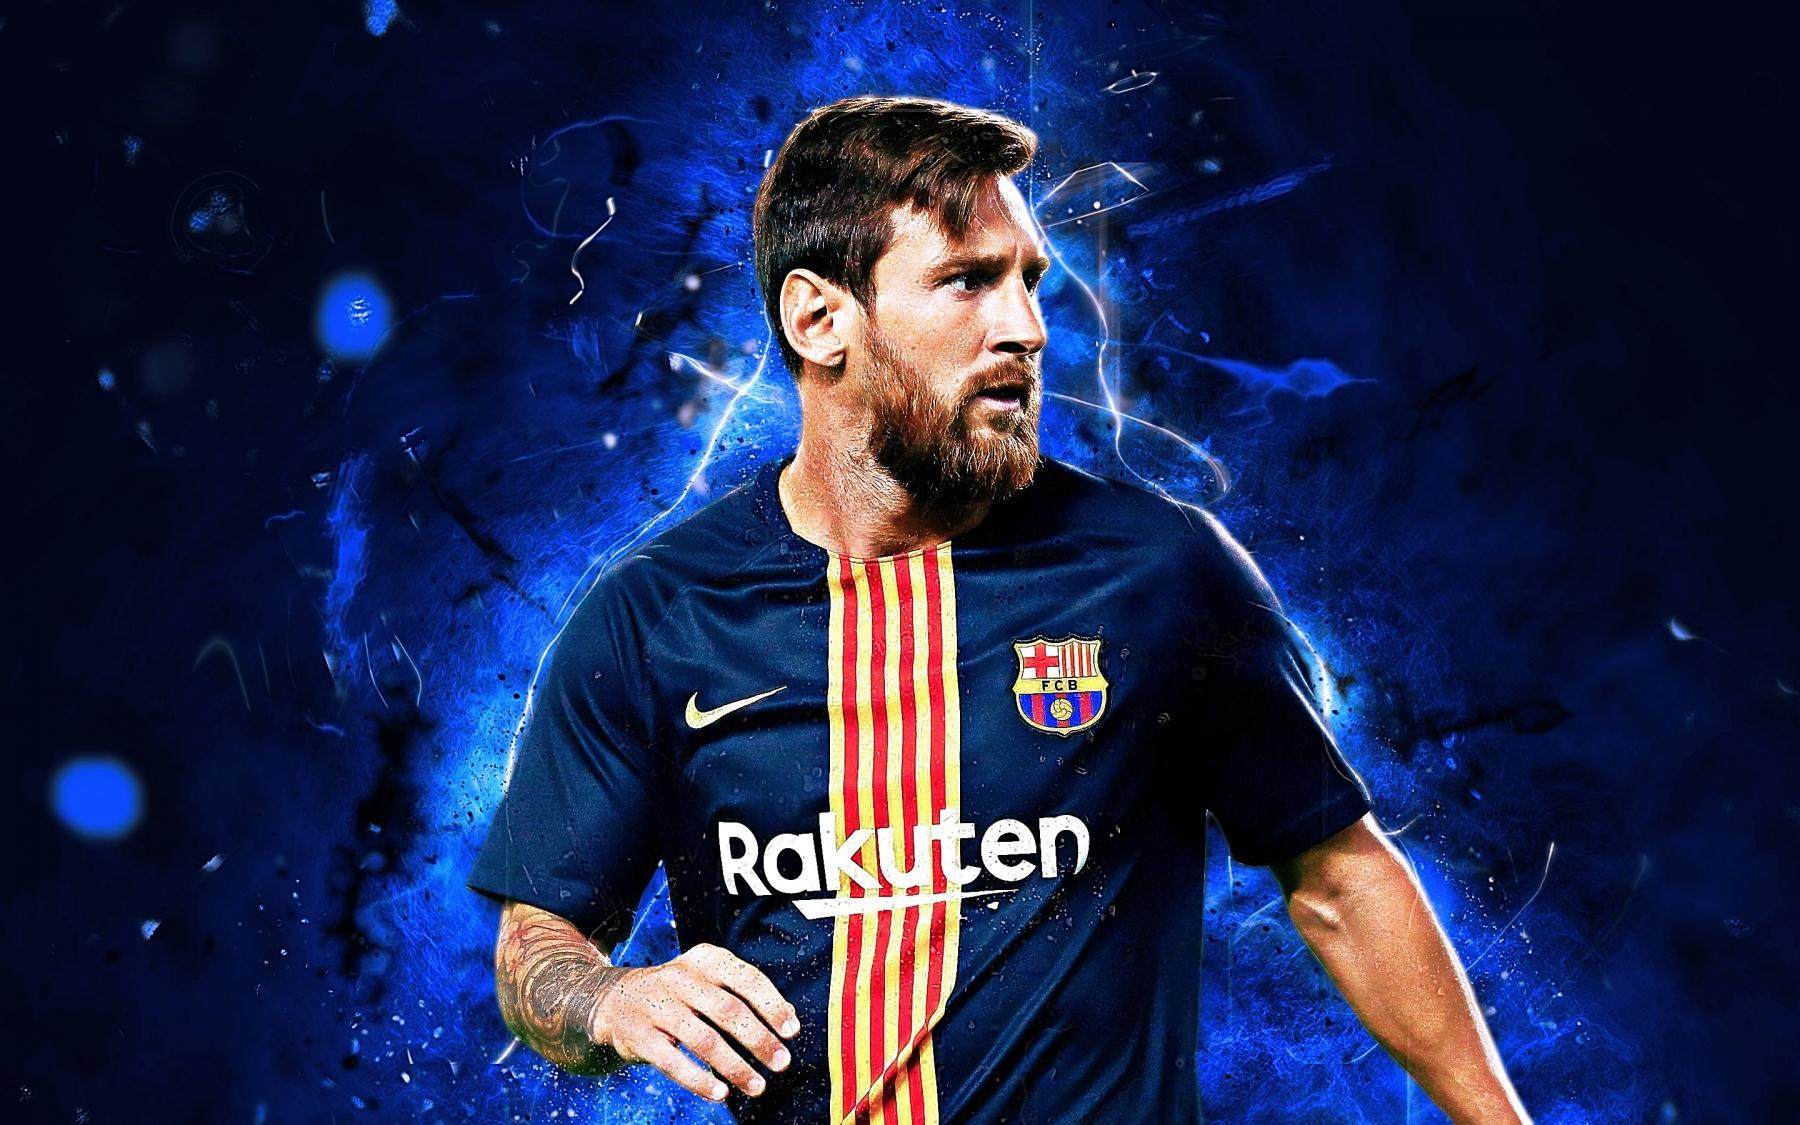 Wallpapers Messi Hd 2019 For Android Apk Download